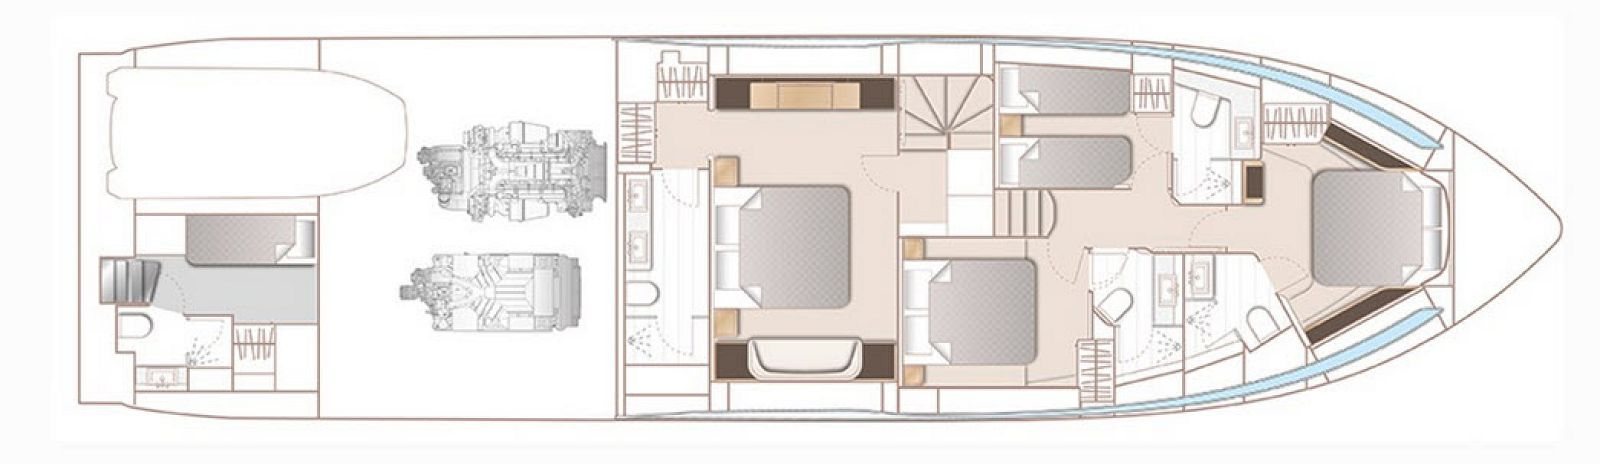 layout configuration of the princess yachts v78